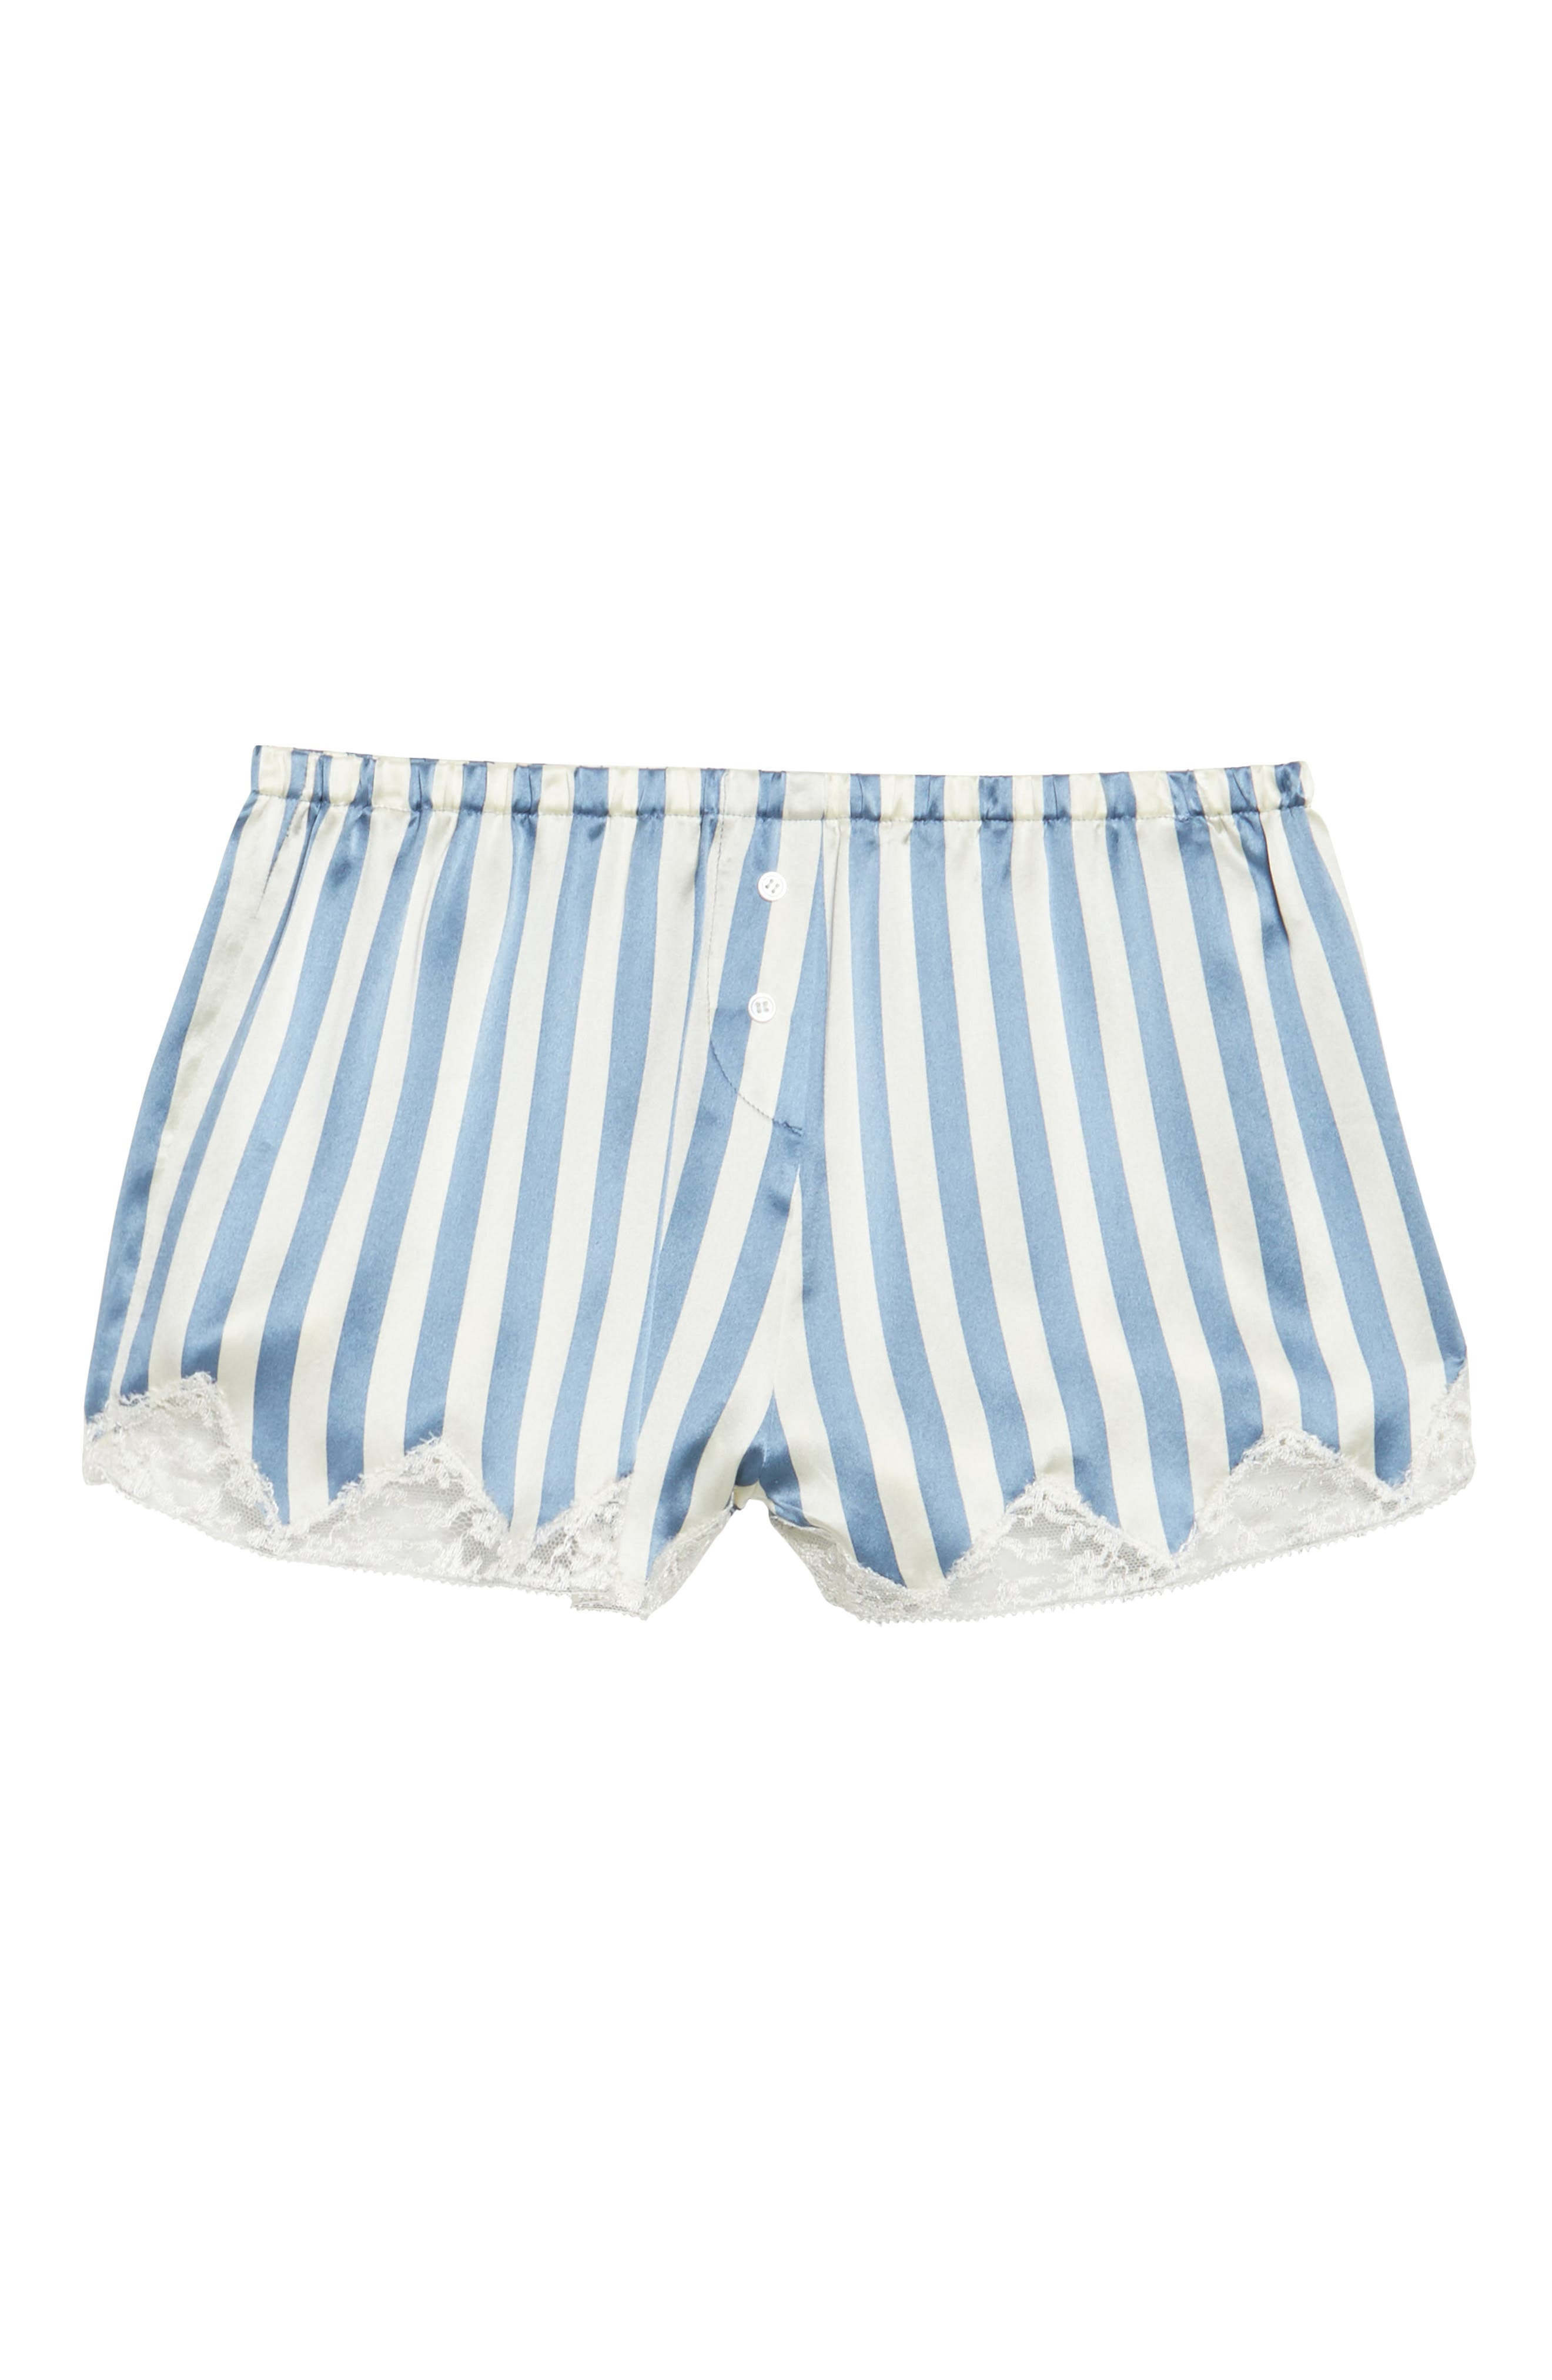 Josephine Silk Stripe Shorts,                             Alternate thumbnail 6, color,